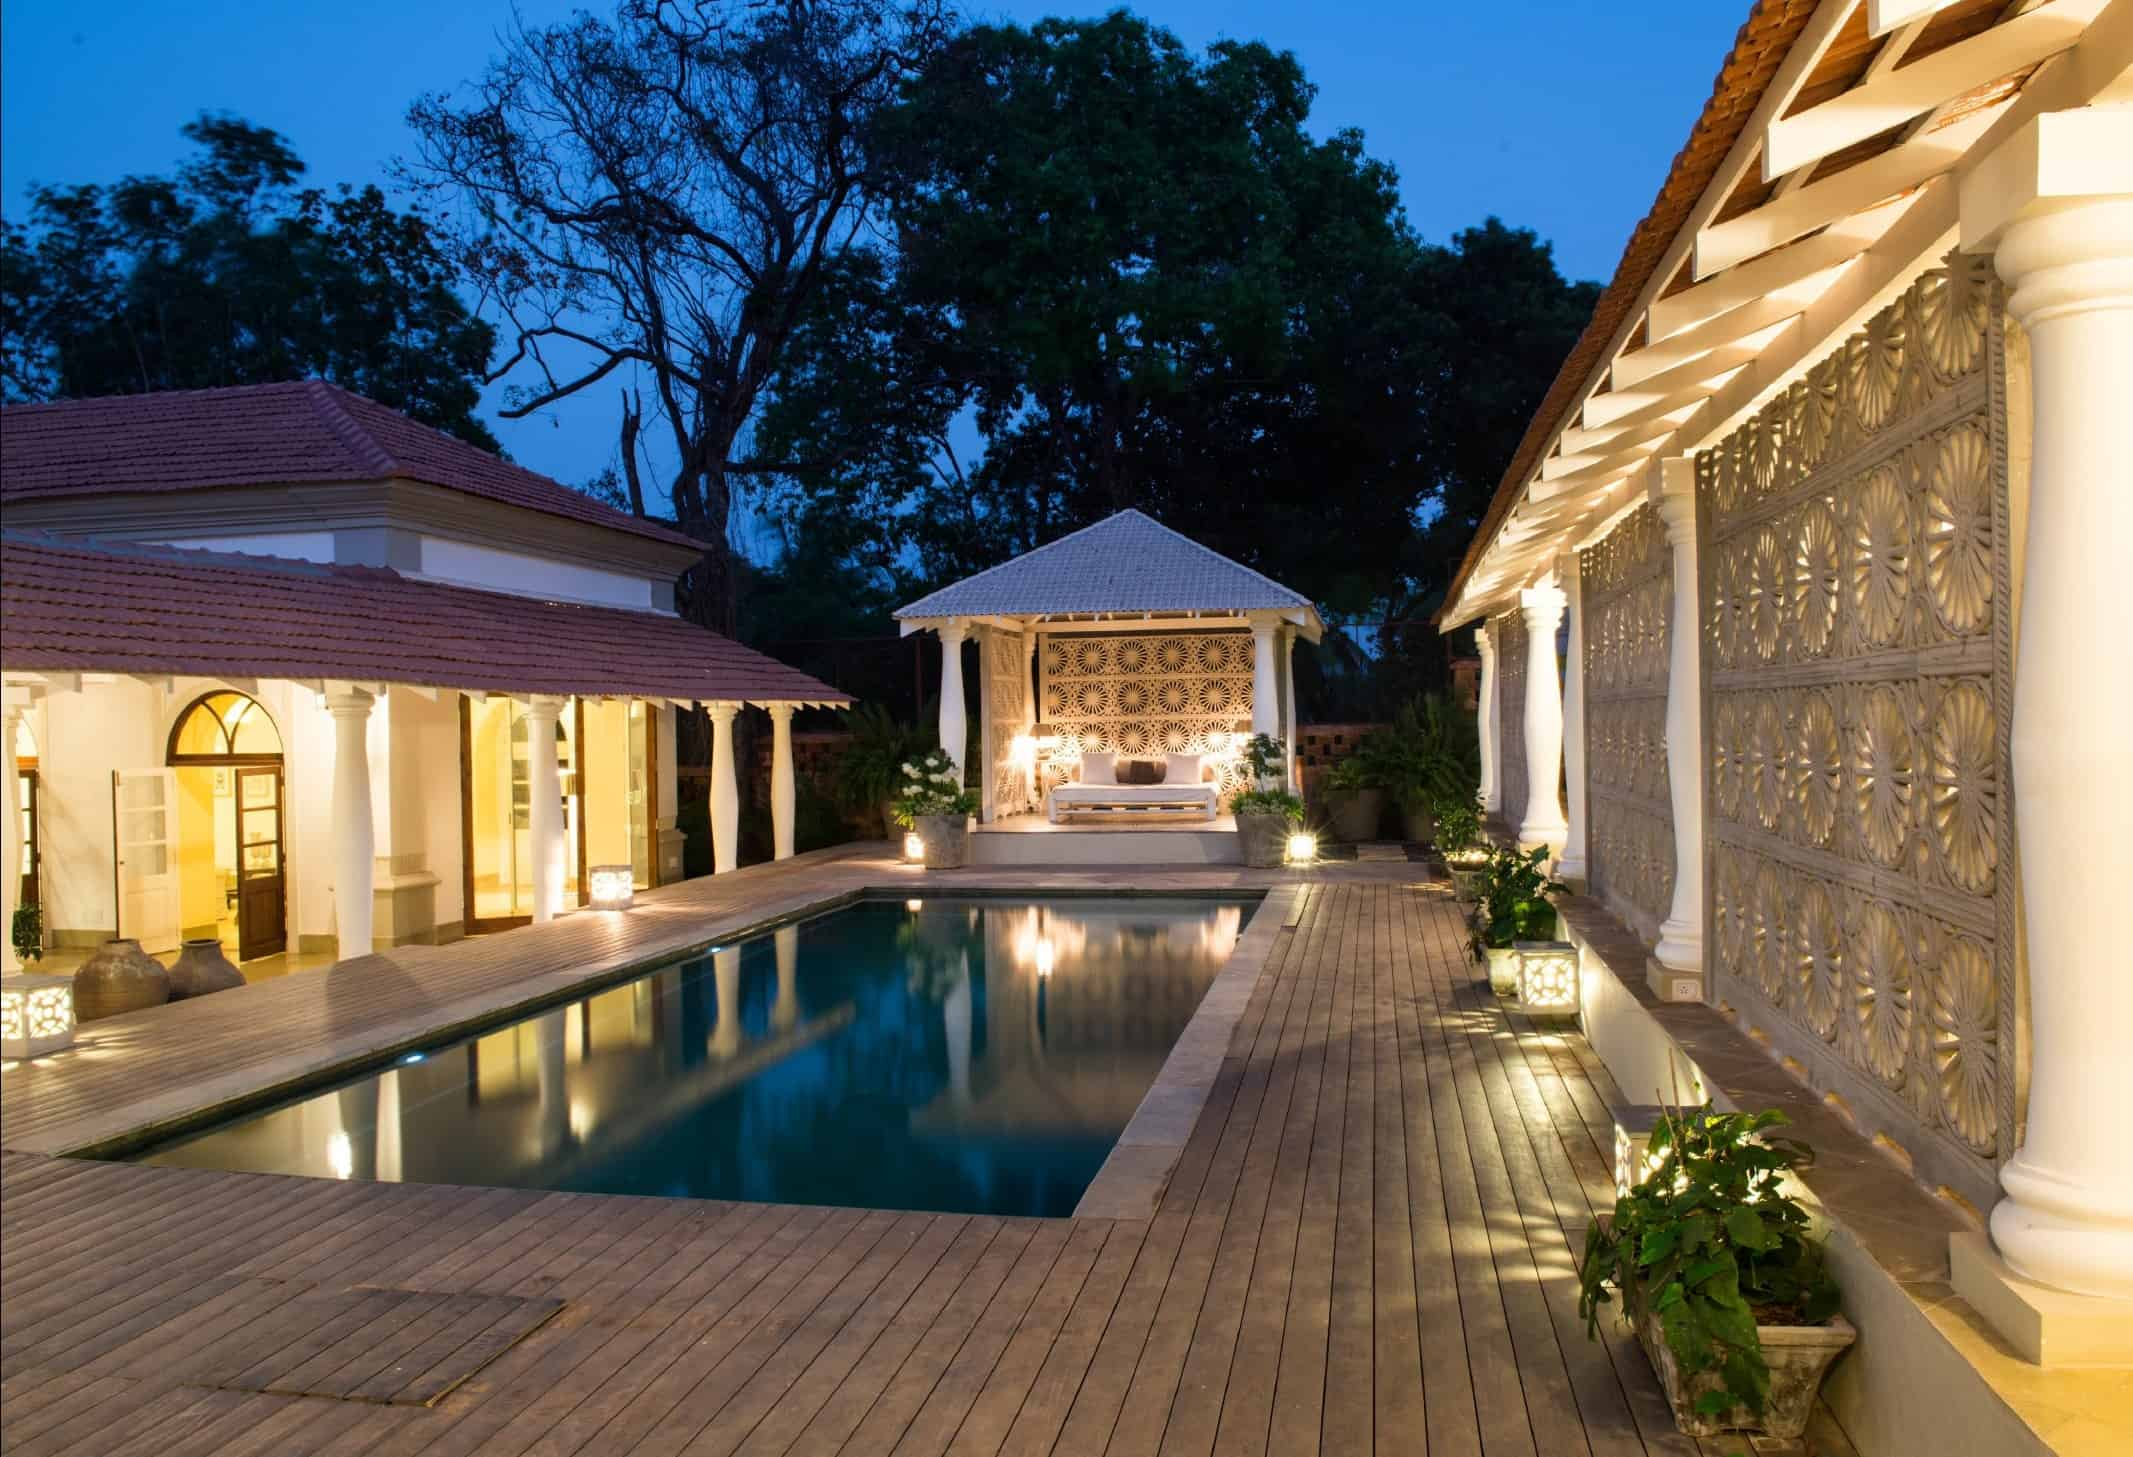 Villa Branco  Luxury Home  Property for Sale  Rent in